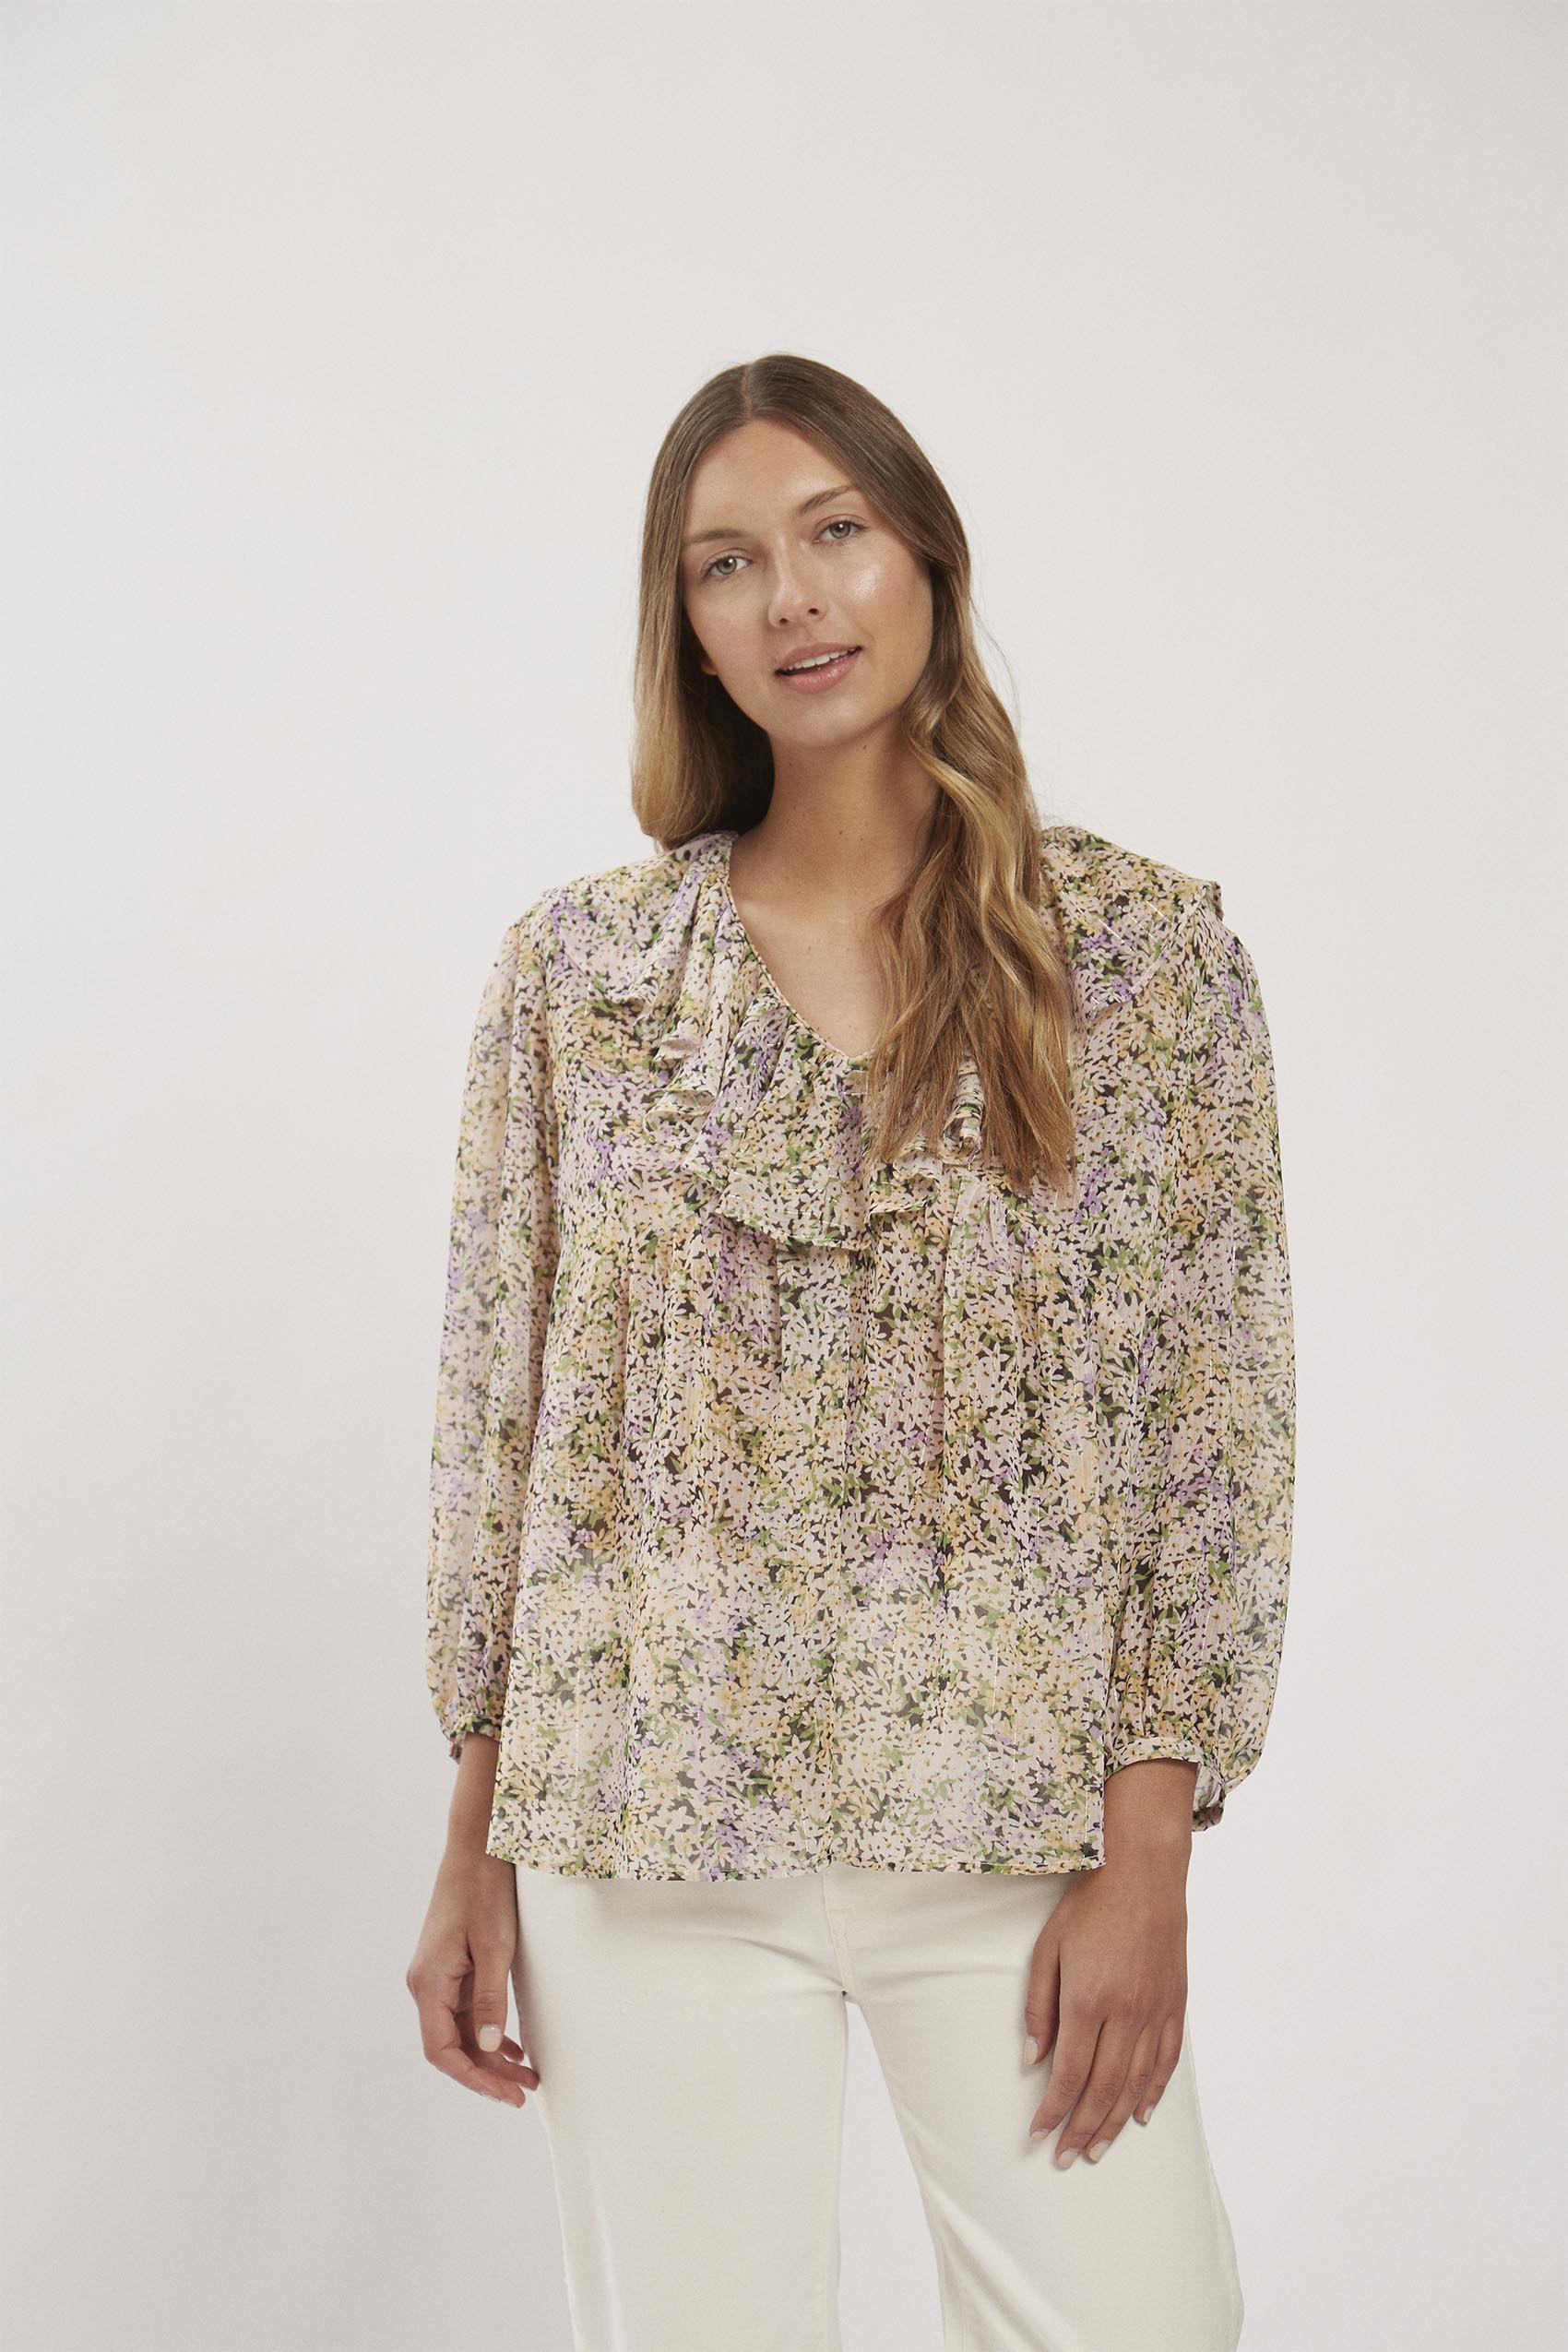 awada_blusa-cristy_00-09-2021__picture-17732